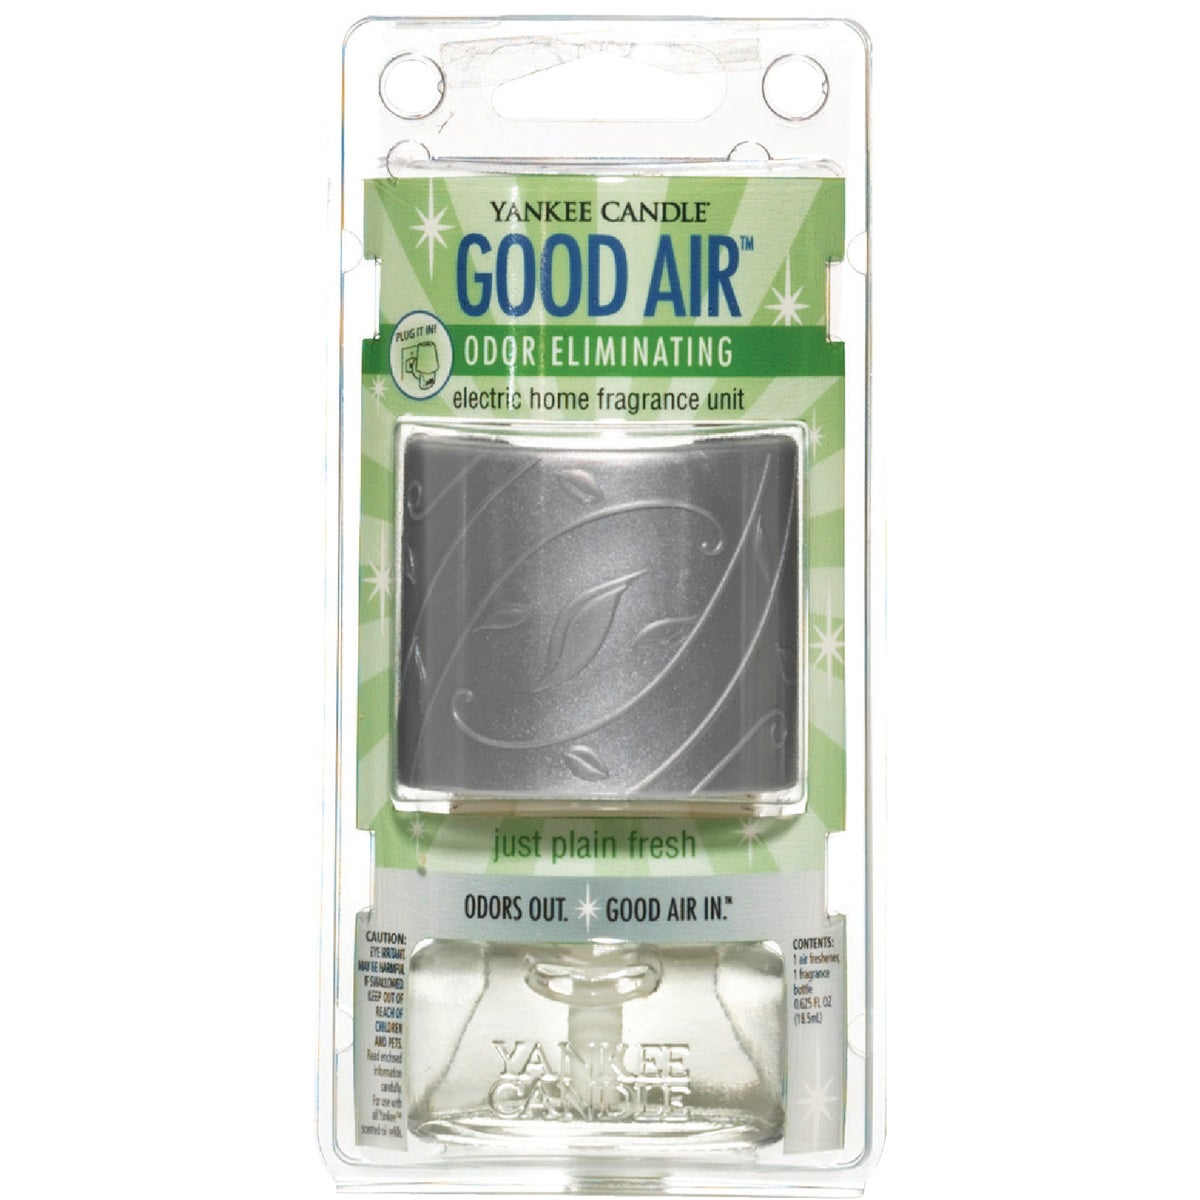 GOOD AIR ELECTRIC BASE - 1200388 by Yankee Candle Co